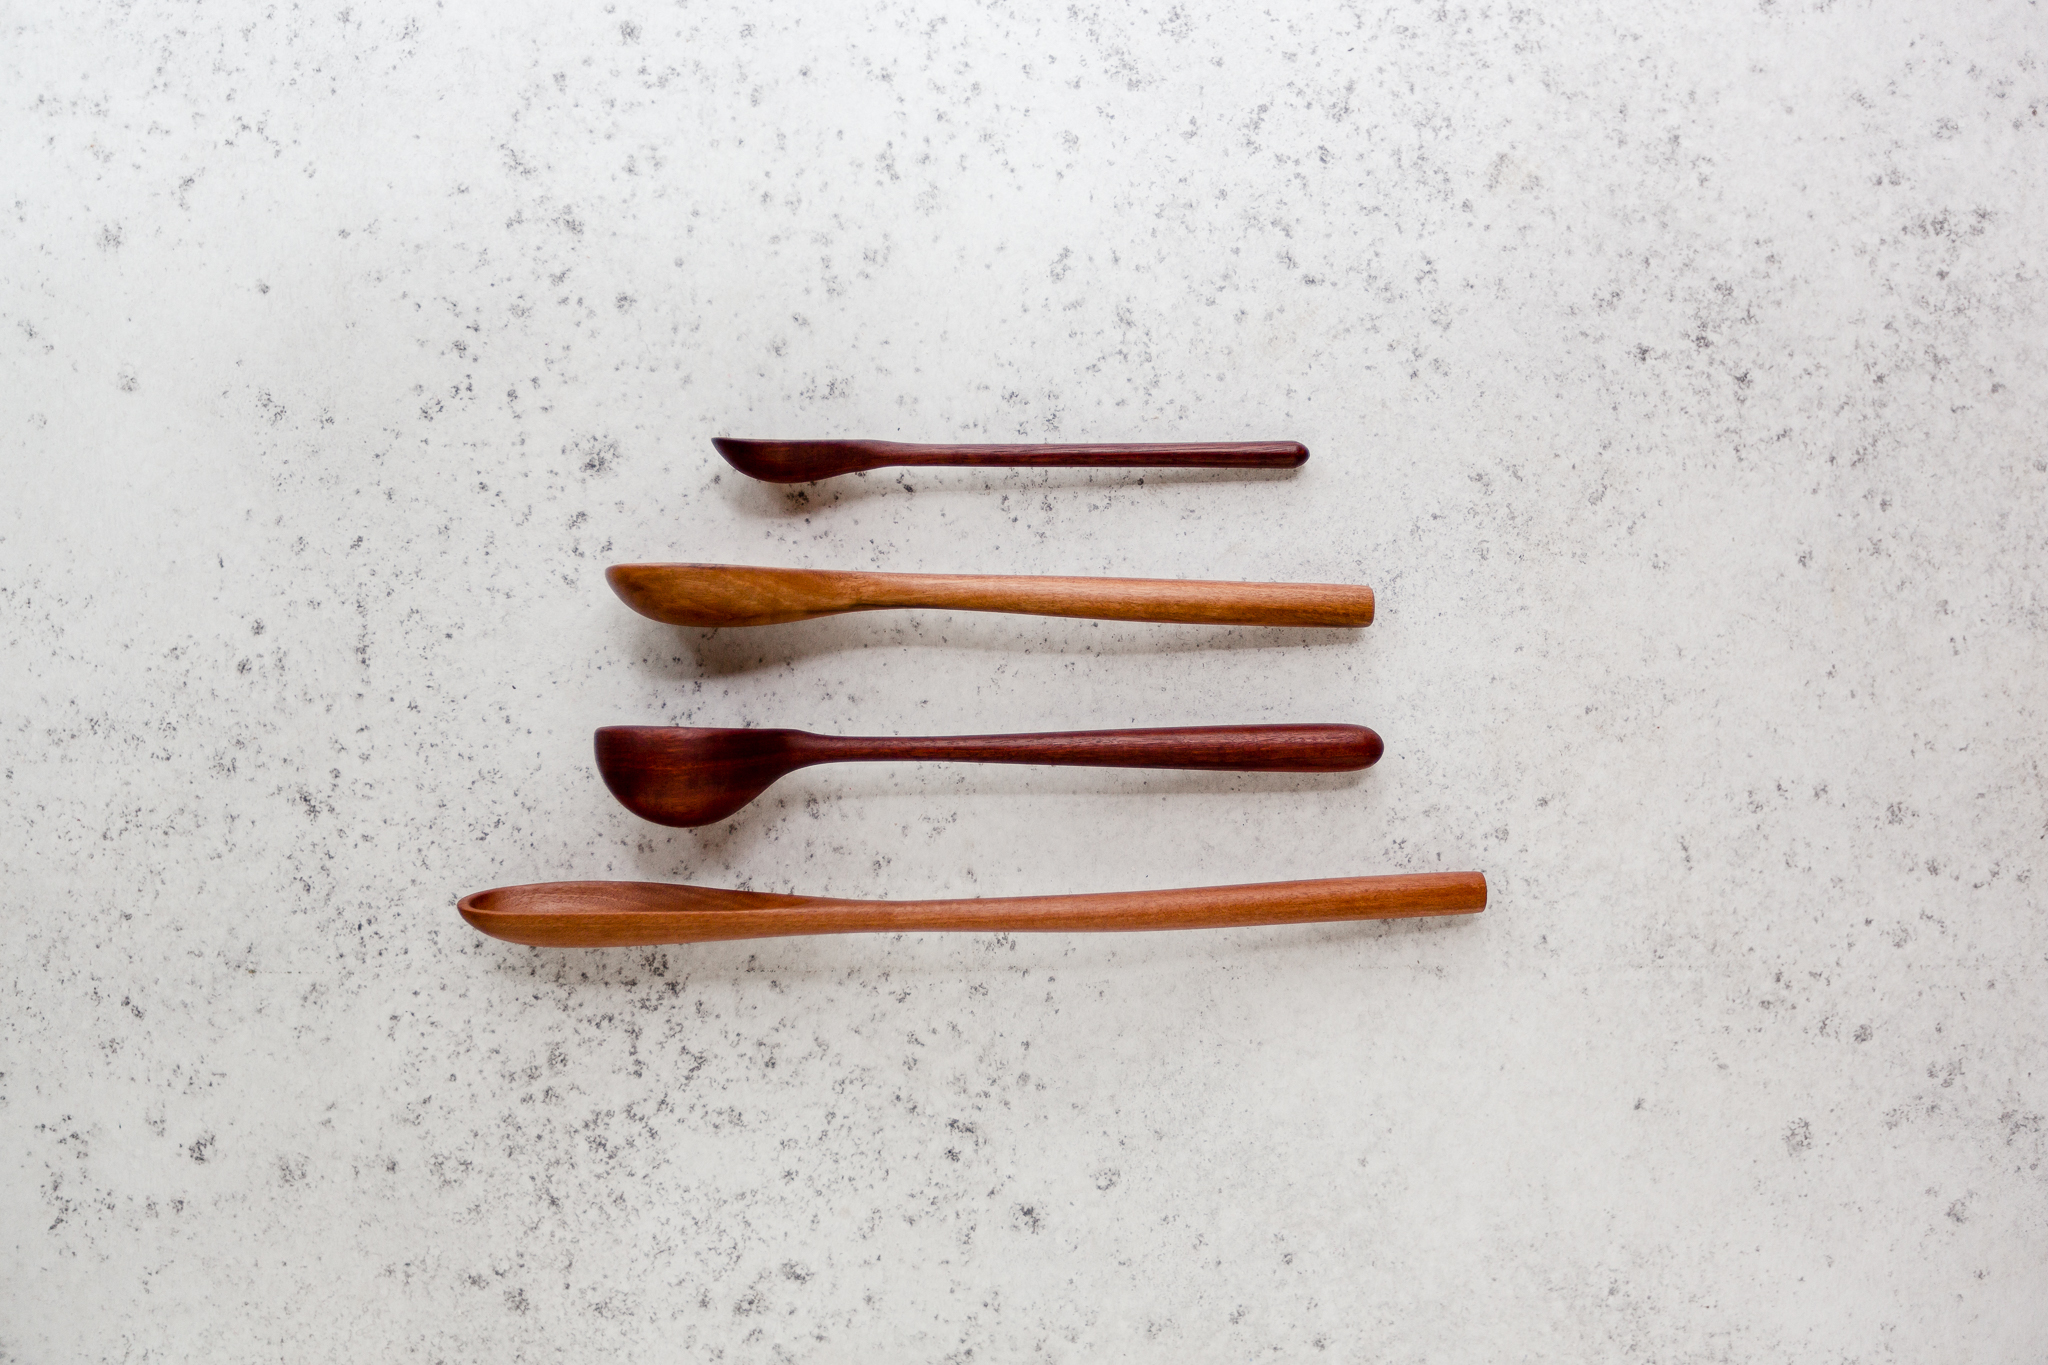 SPOONS + SPATULAS - Our one-off wooden spoons and spatulas are created with functionality in mind. Available in a variety of shapes, sizes and timber types, these versatile pieces are great for stirring, mixing, tasting and serving your favourite dishes and will become your favoured utensil and serving spoon in your home.